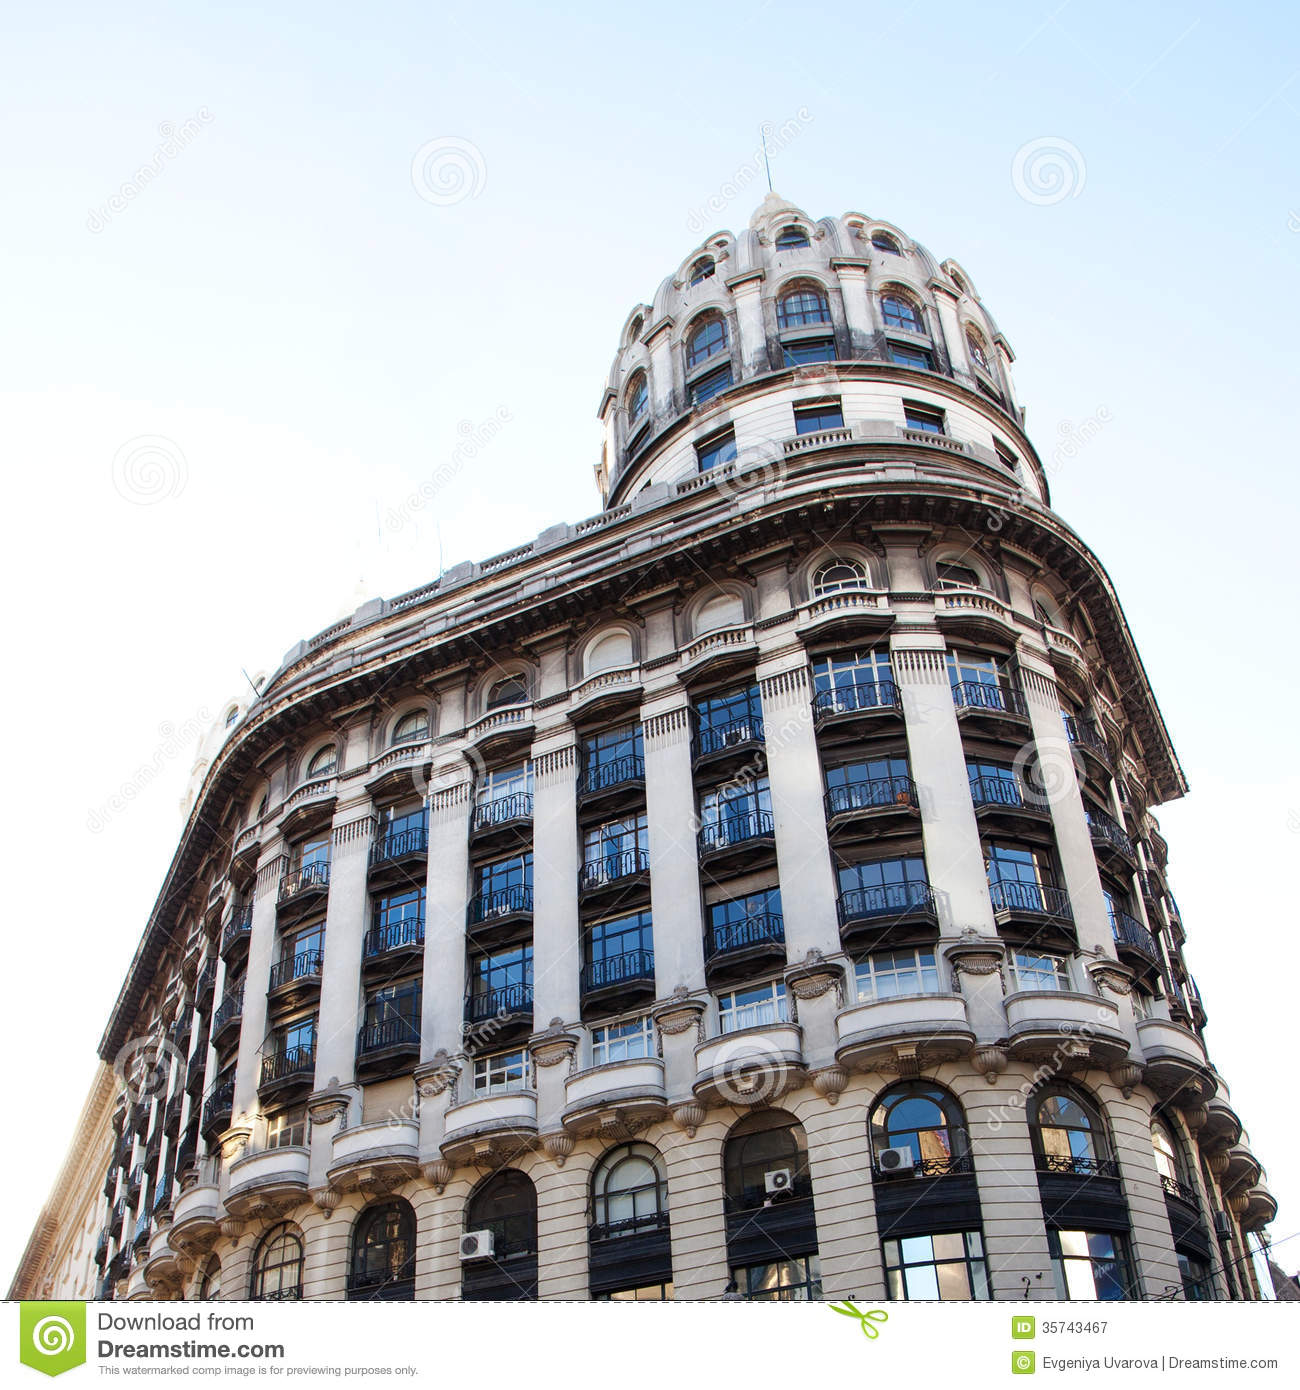 Habitually Chic Beautiful In Buenos Aires: Building In The Heart Of Buenos Aires, Argentina Royalty Free Stock Photography